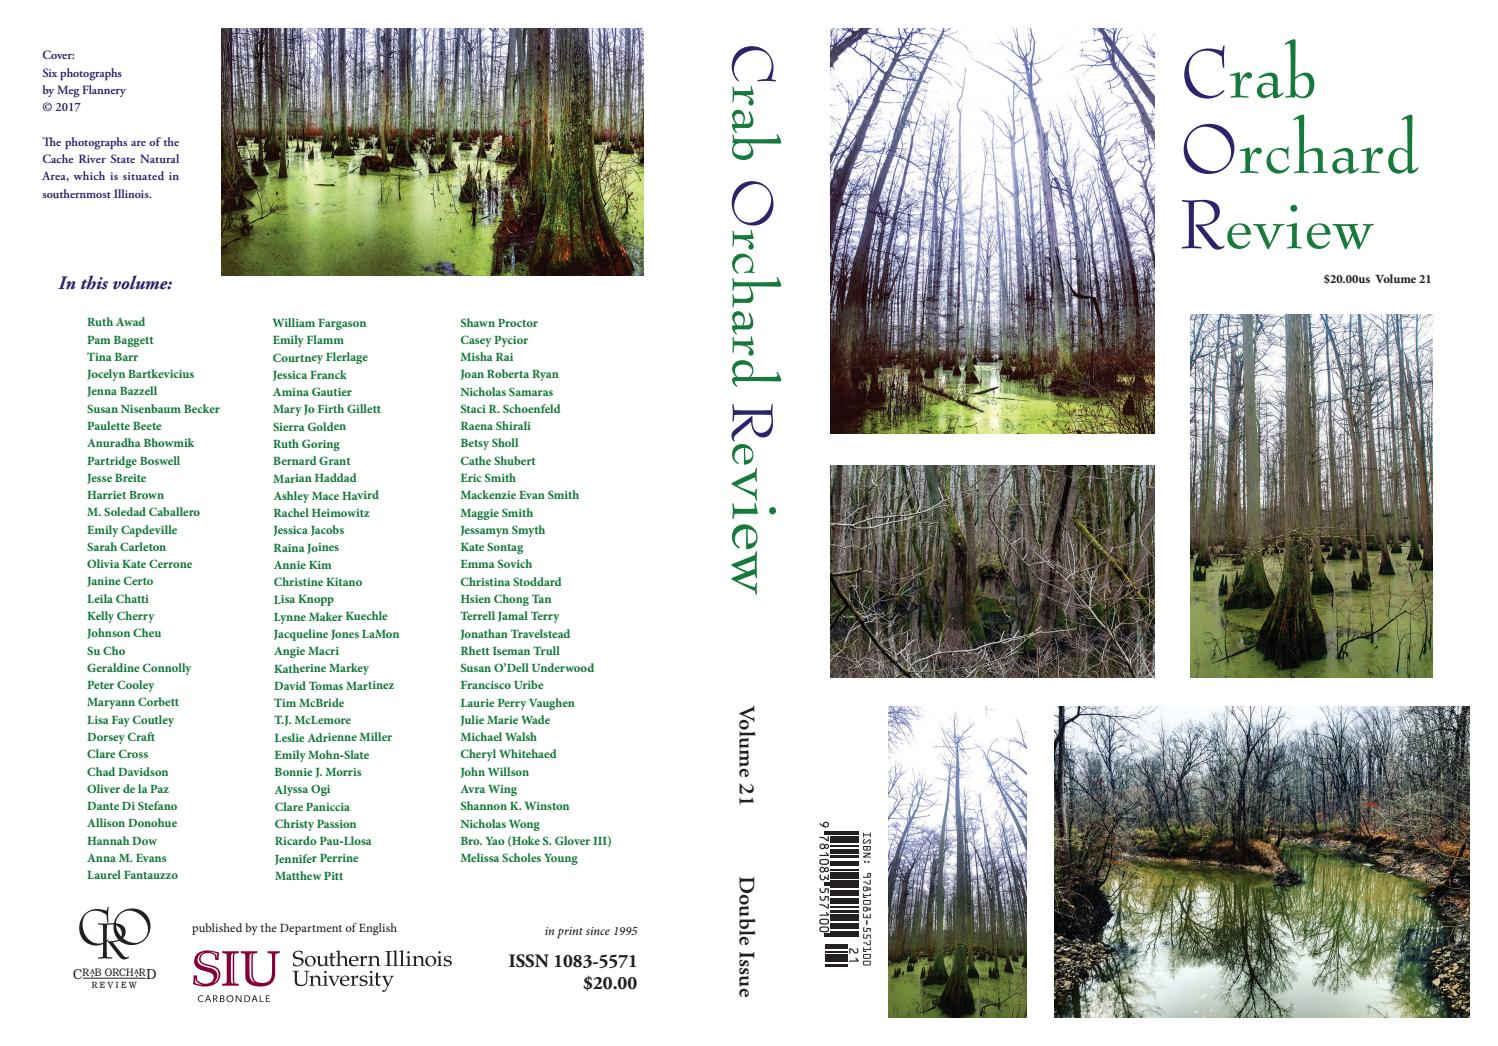 Crab Orchard Review Vol 21 Double Issue 2017 By Circuit Board And Binary Code Forming A Mysterious Night Landscape Of Issuu